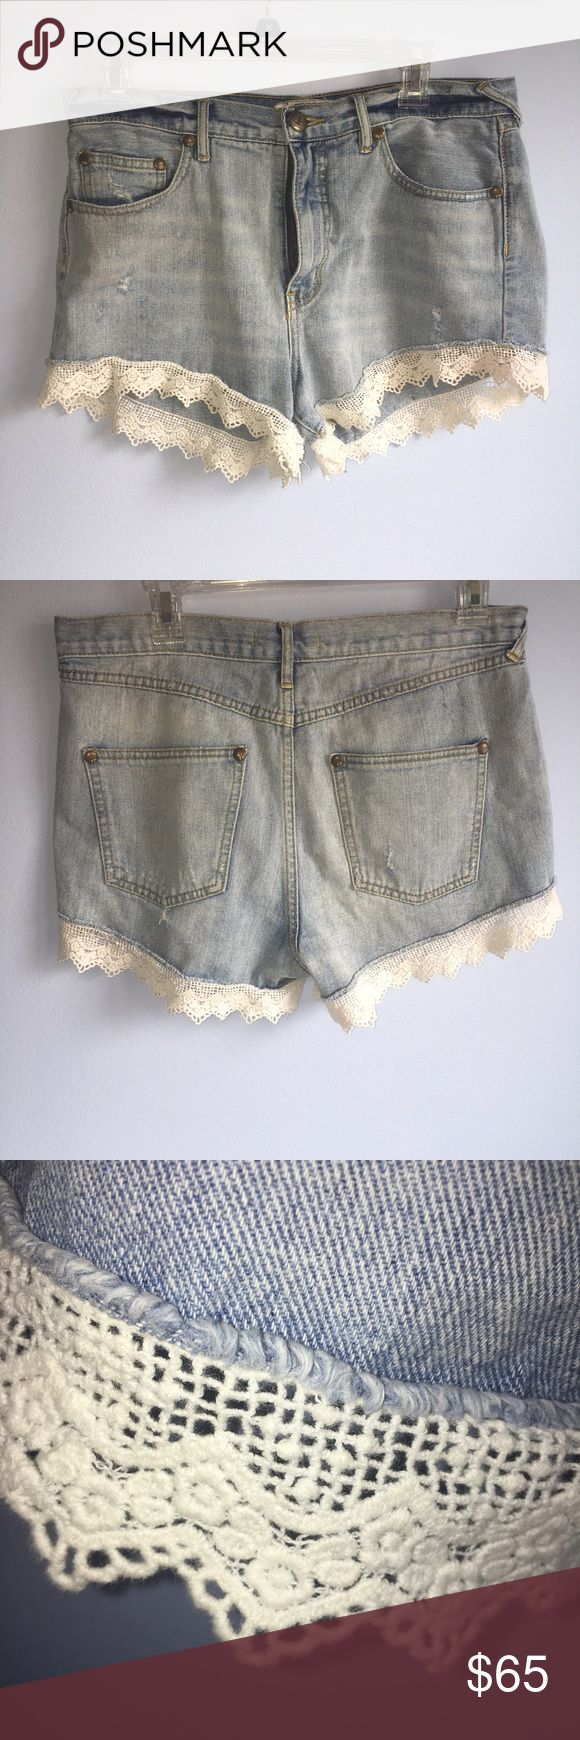 Free people lace jean shorts Hardly worn Free People faded jean shorts with lace detailing. Well made and really flattering! Free People Shorts Jean Shorts